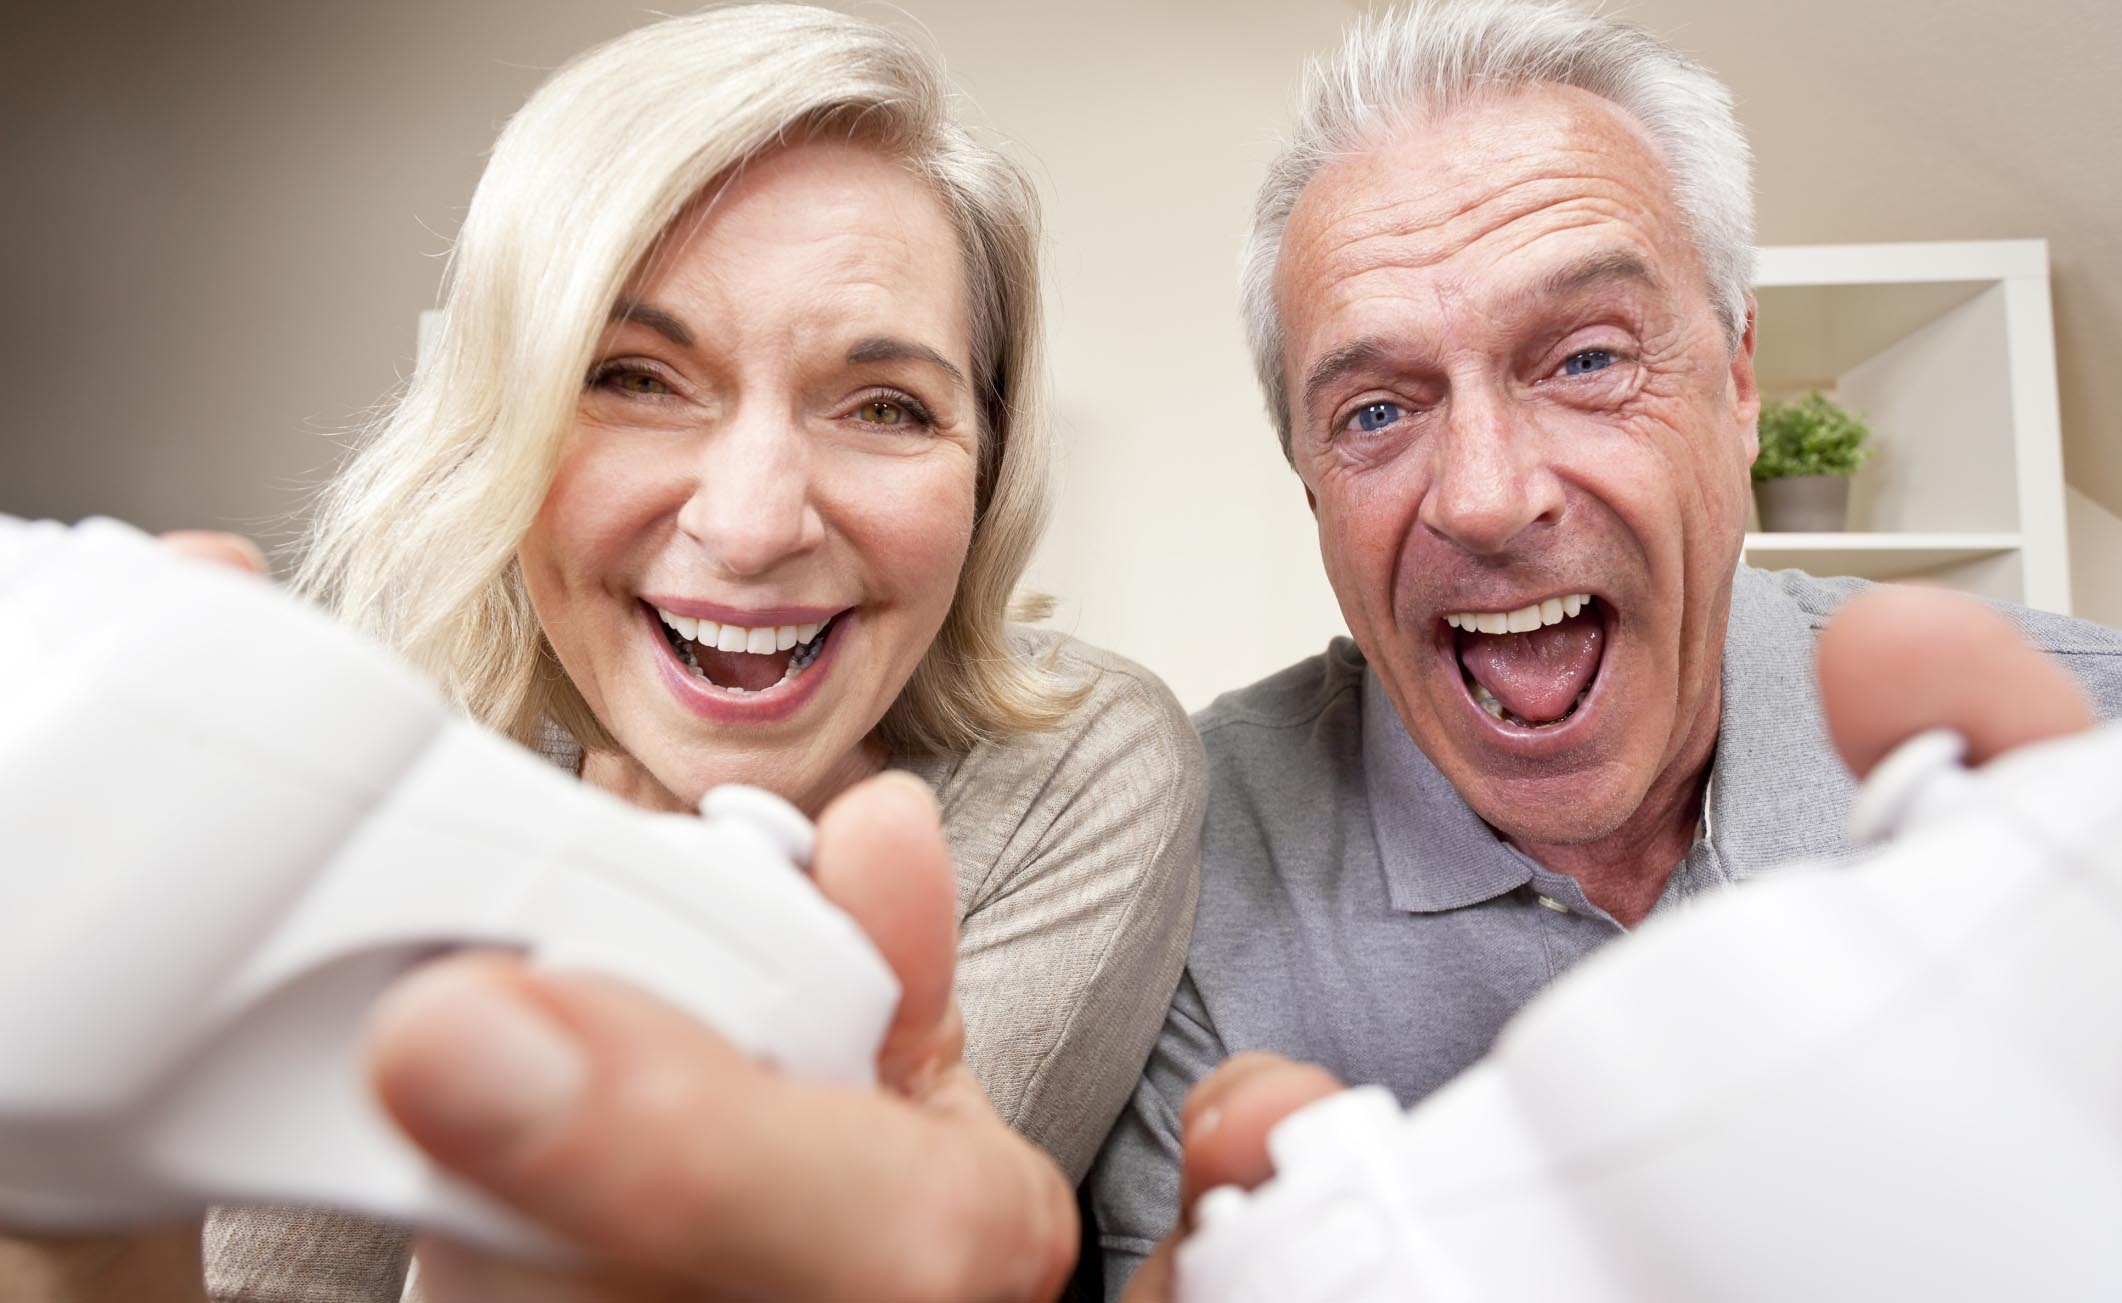 Most Legitimate Seniors Online Dating Site Without Pay